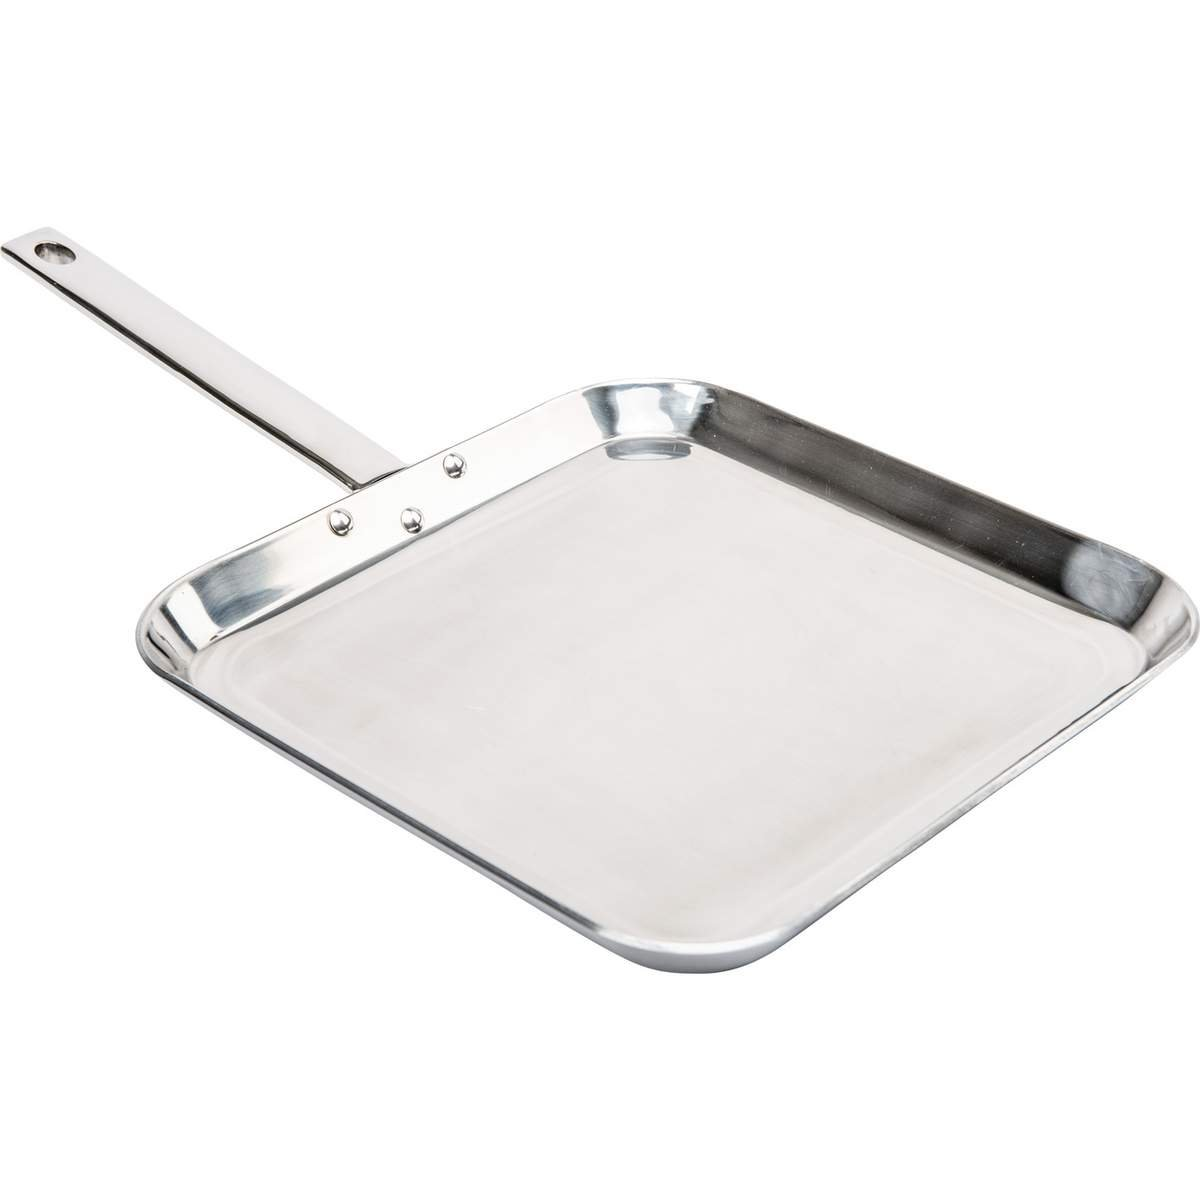 Chef's Secret by Maxam 11'' T304 Stainless Steel Square Griddle. by CHEFS